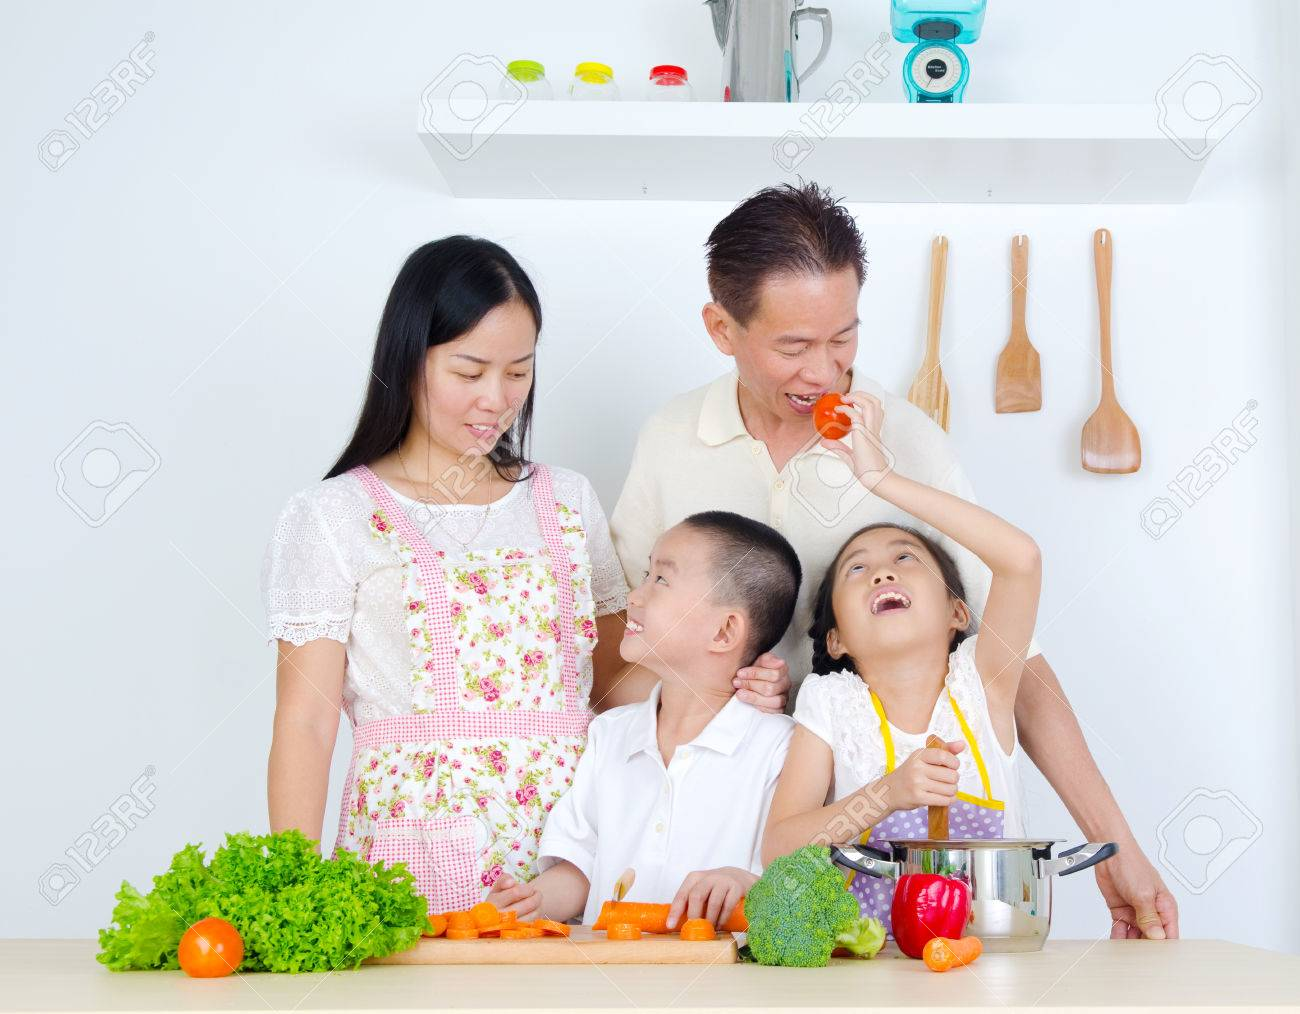 Family cooking kitchen - Asian Family Cooking In The Kitchen Stock Photo 45043114